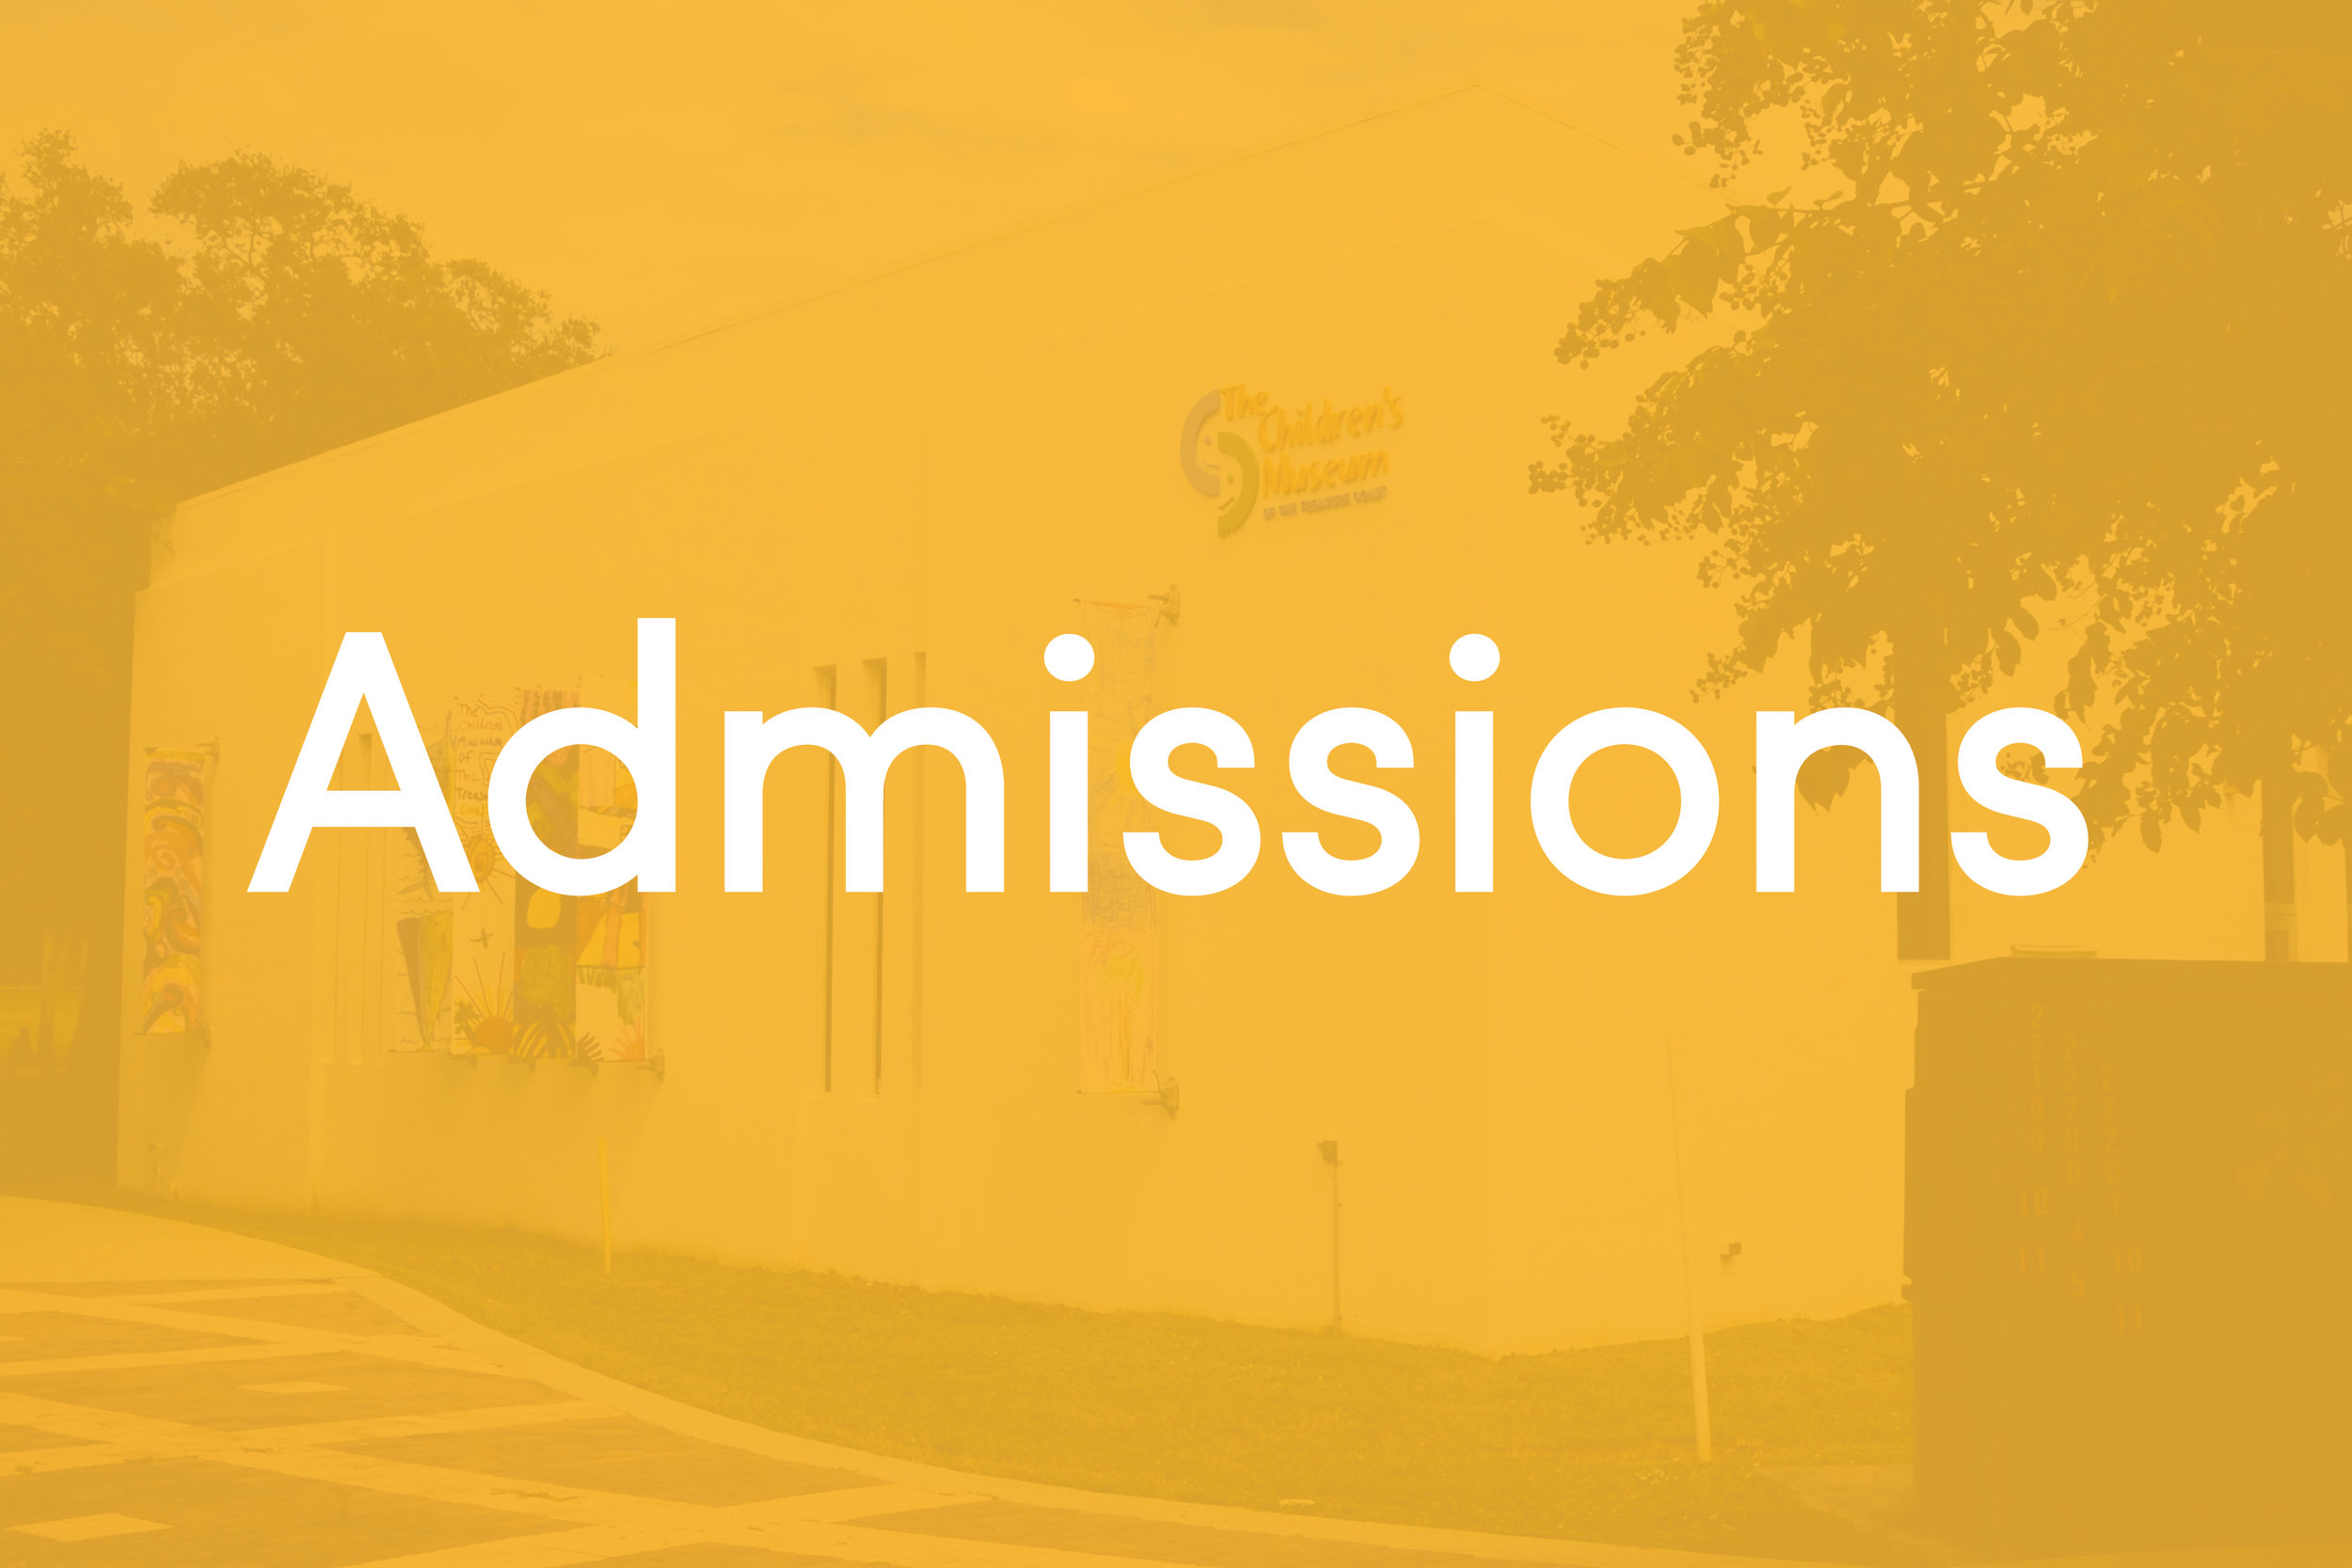 admissions_banner.jpg